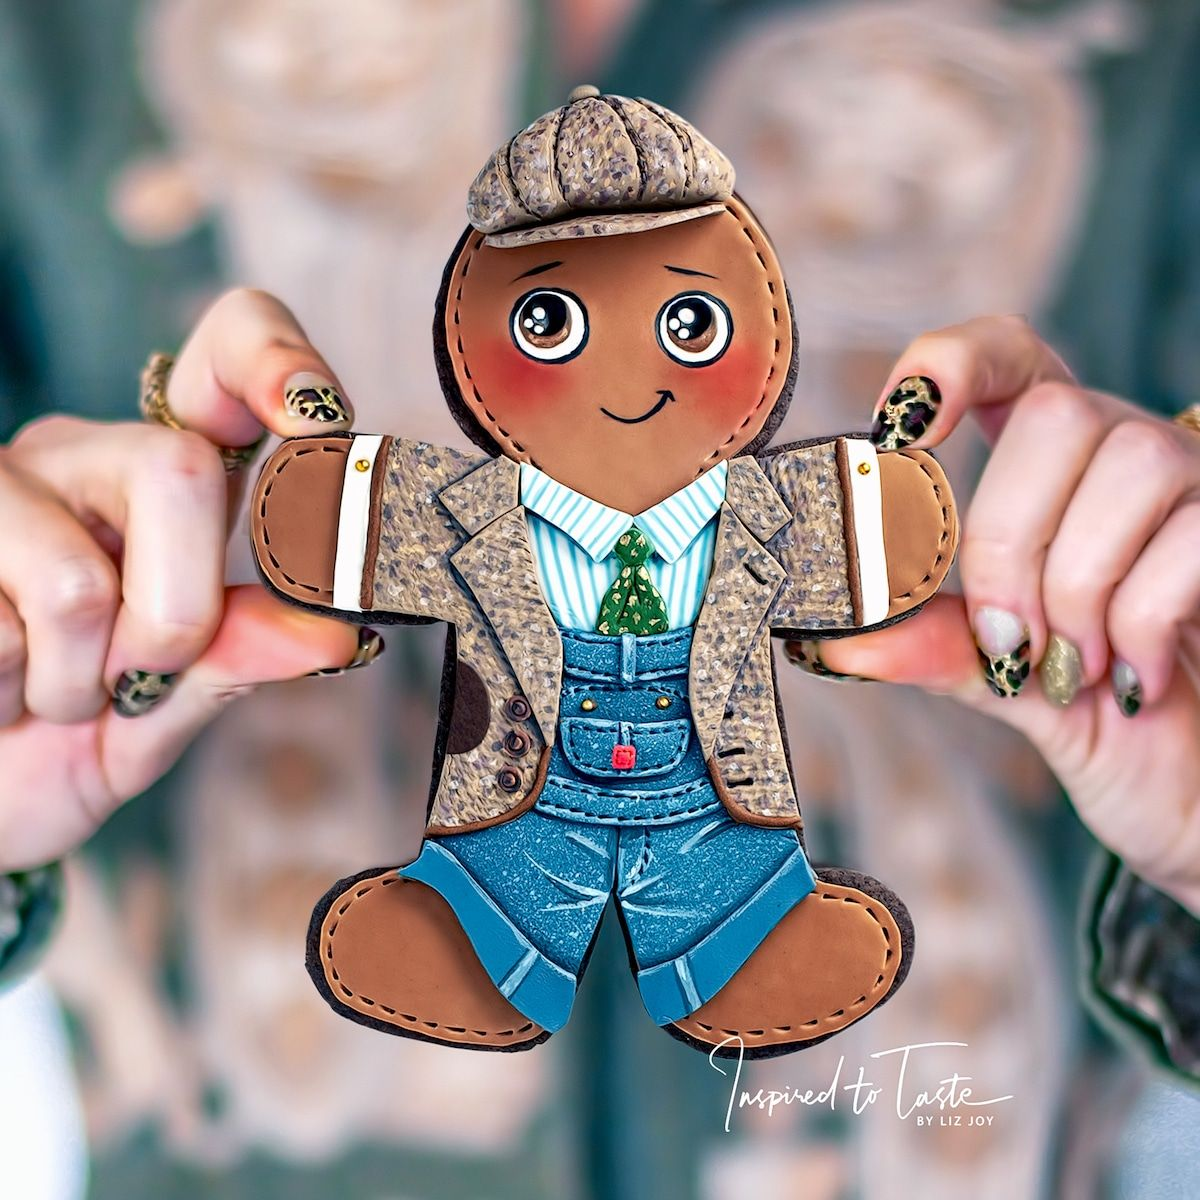 beautiful cookie art design liz joy